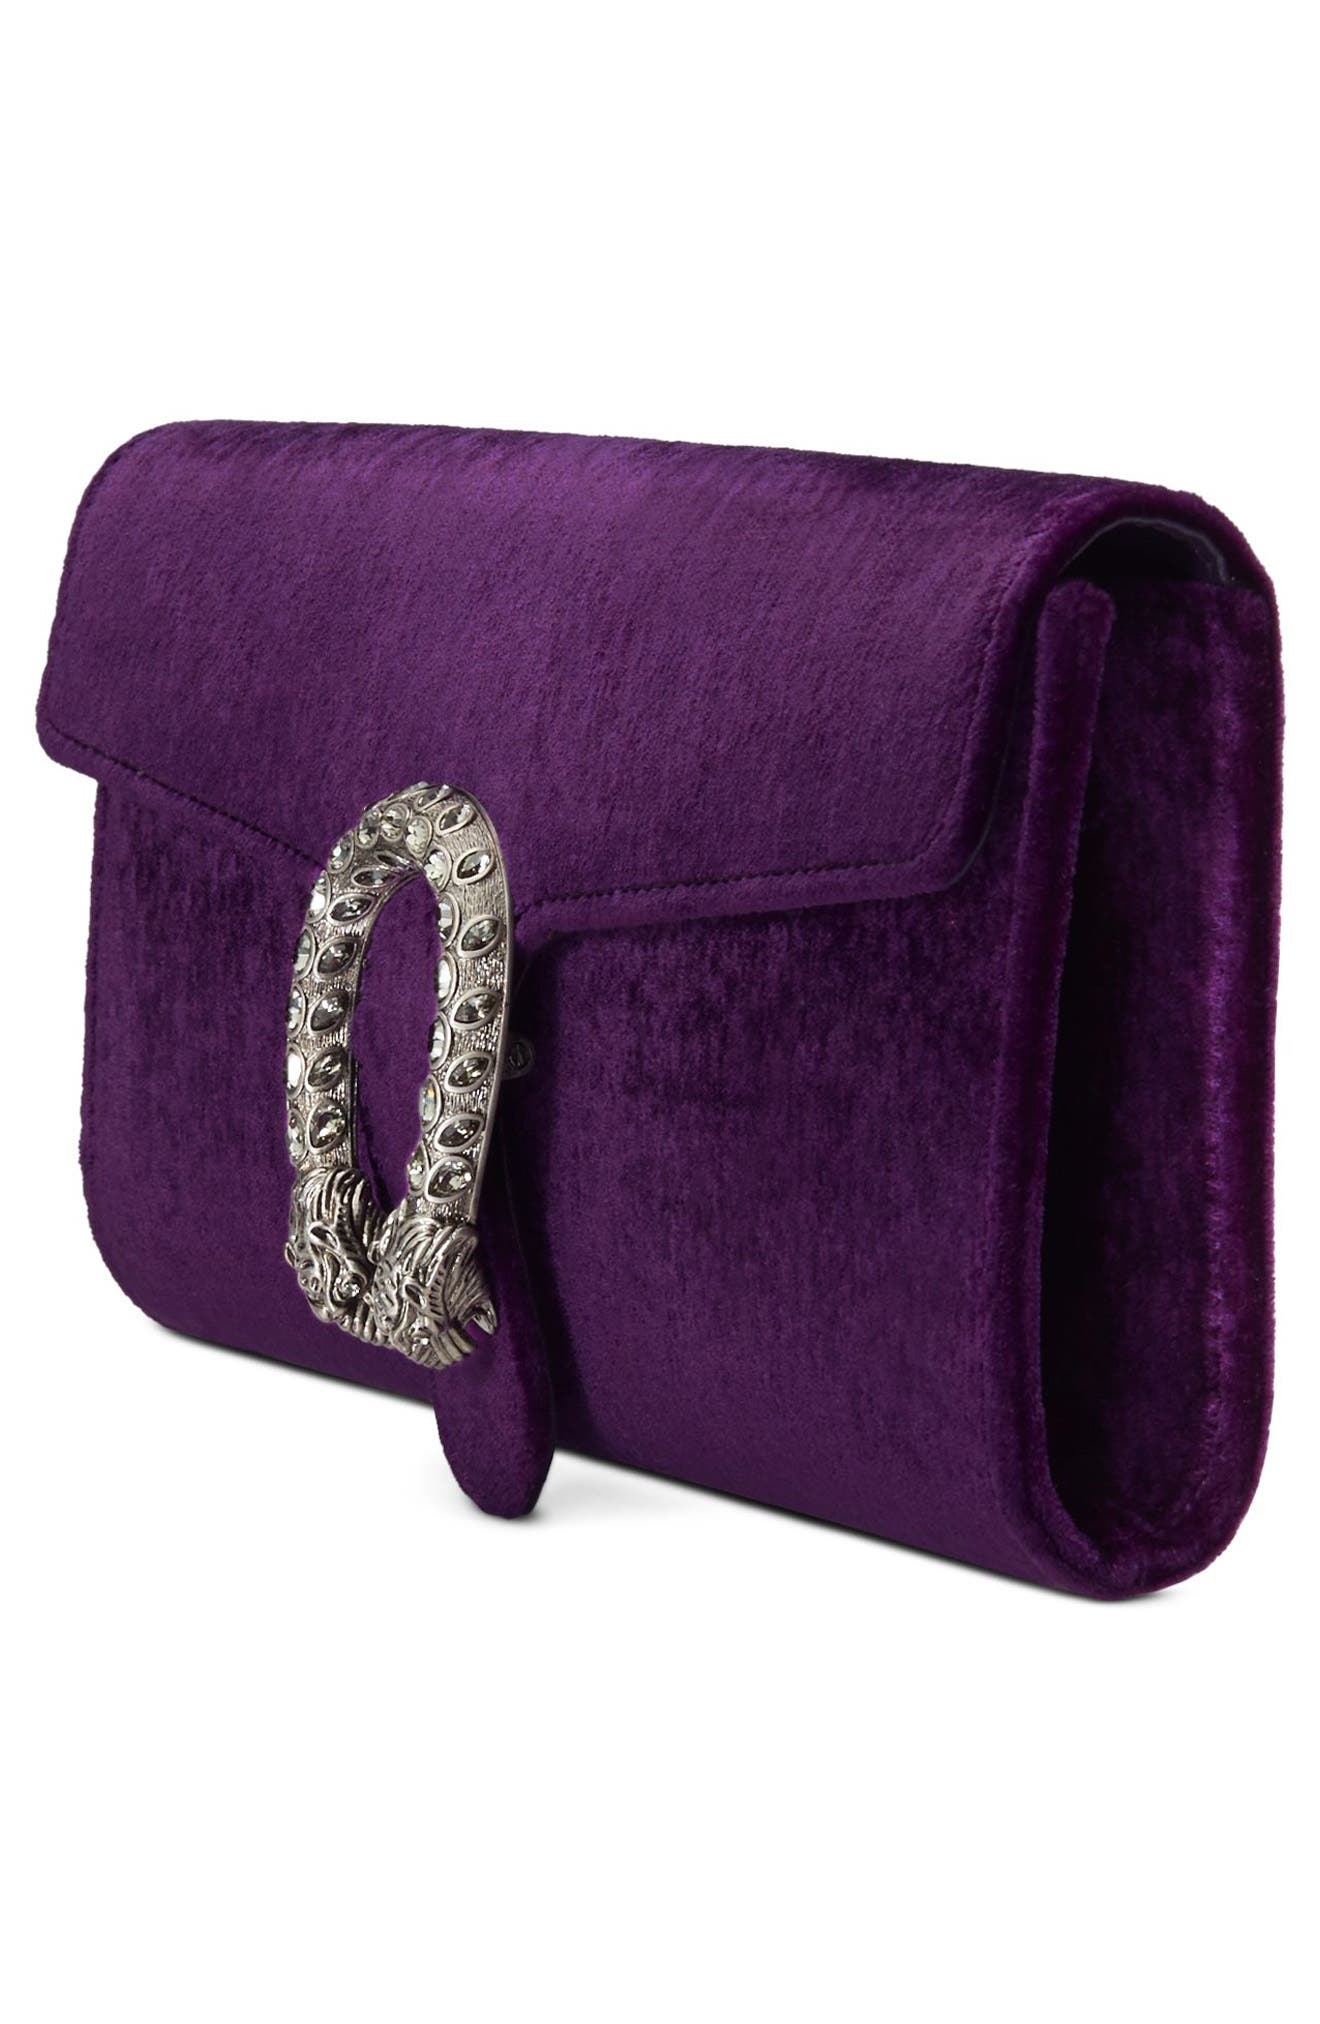 Dionysus Velvet Clutch,                             Alternate thumbnail 4, color,                             VIOLA/ BLACK DIAMOND